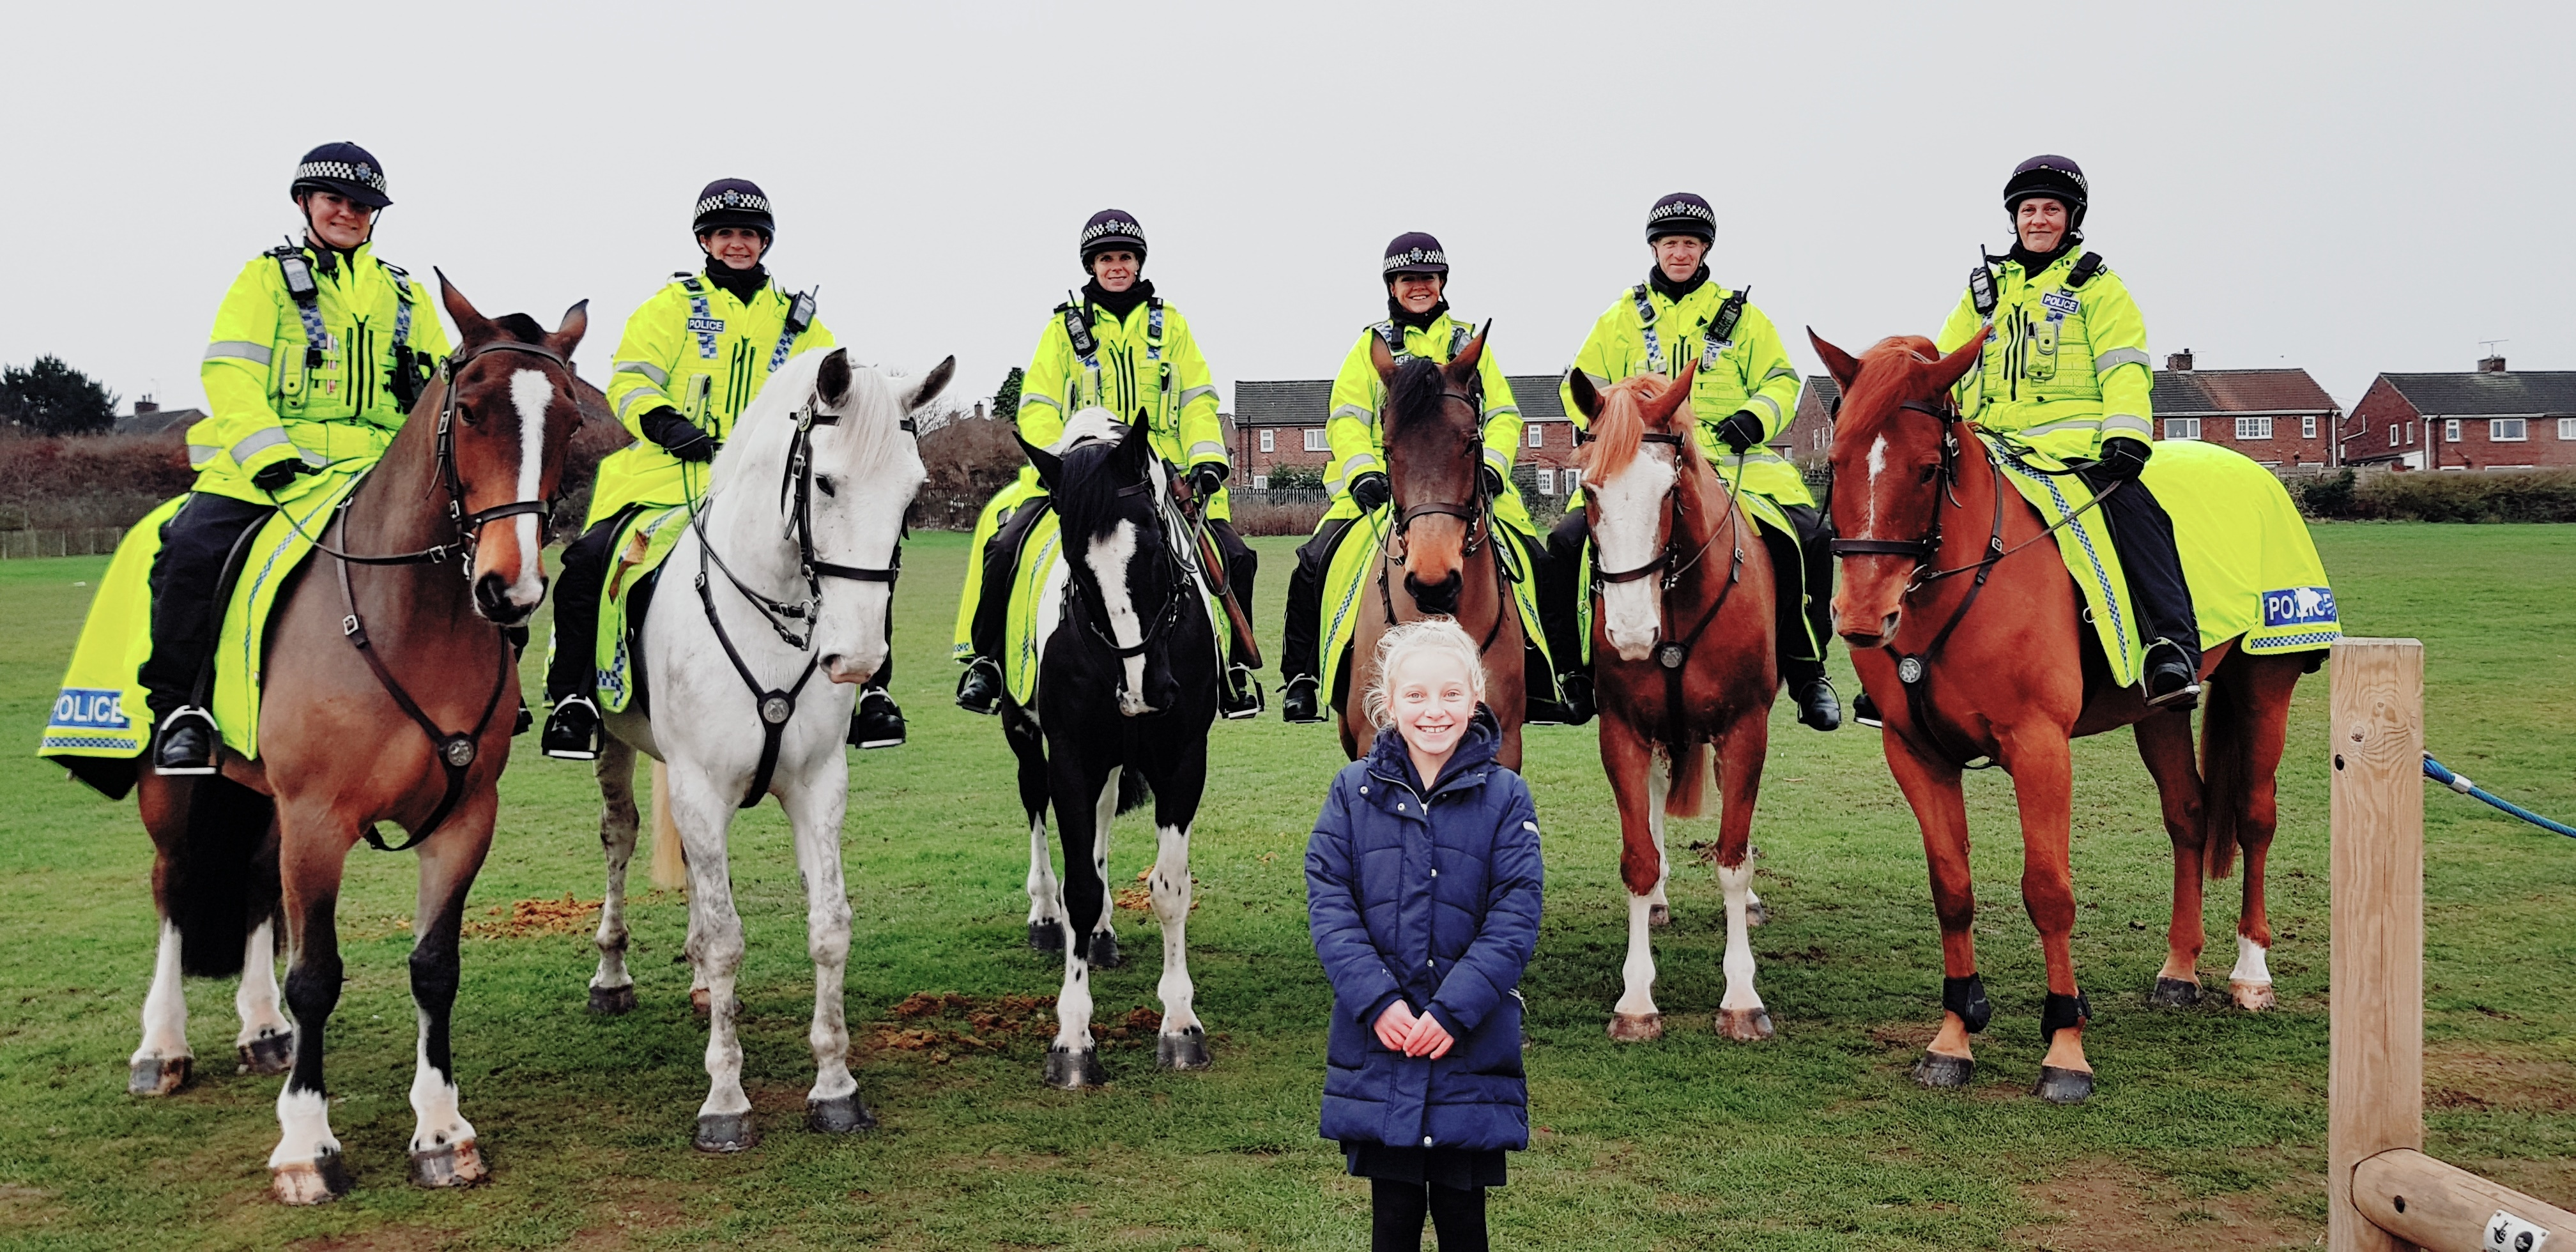 Maddison with our Mounted Police Unit